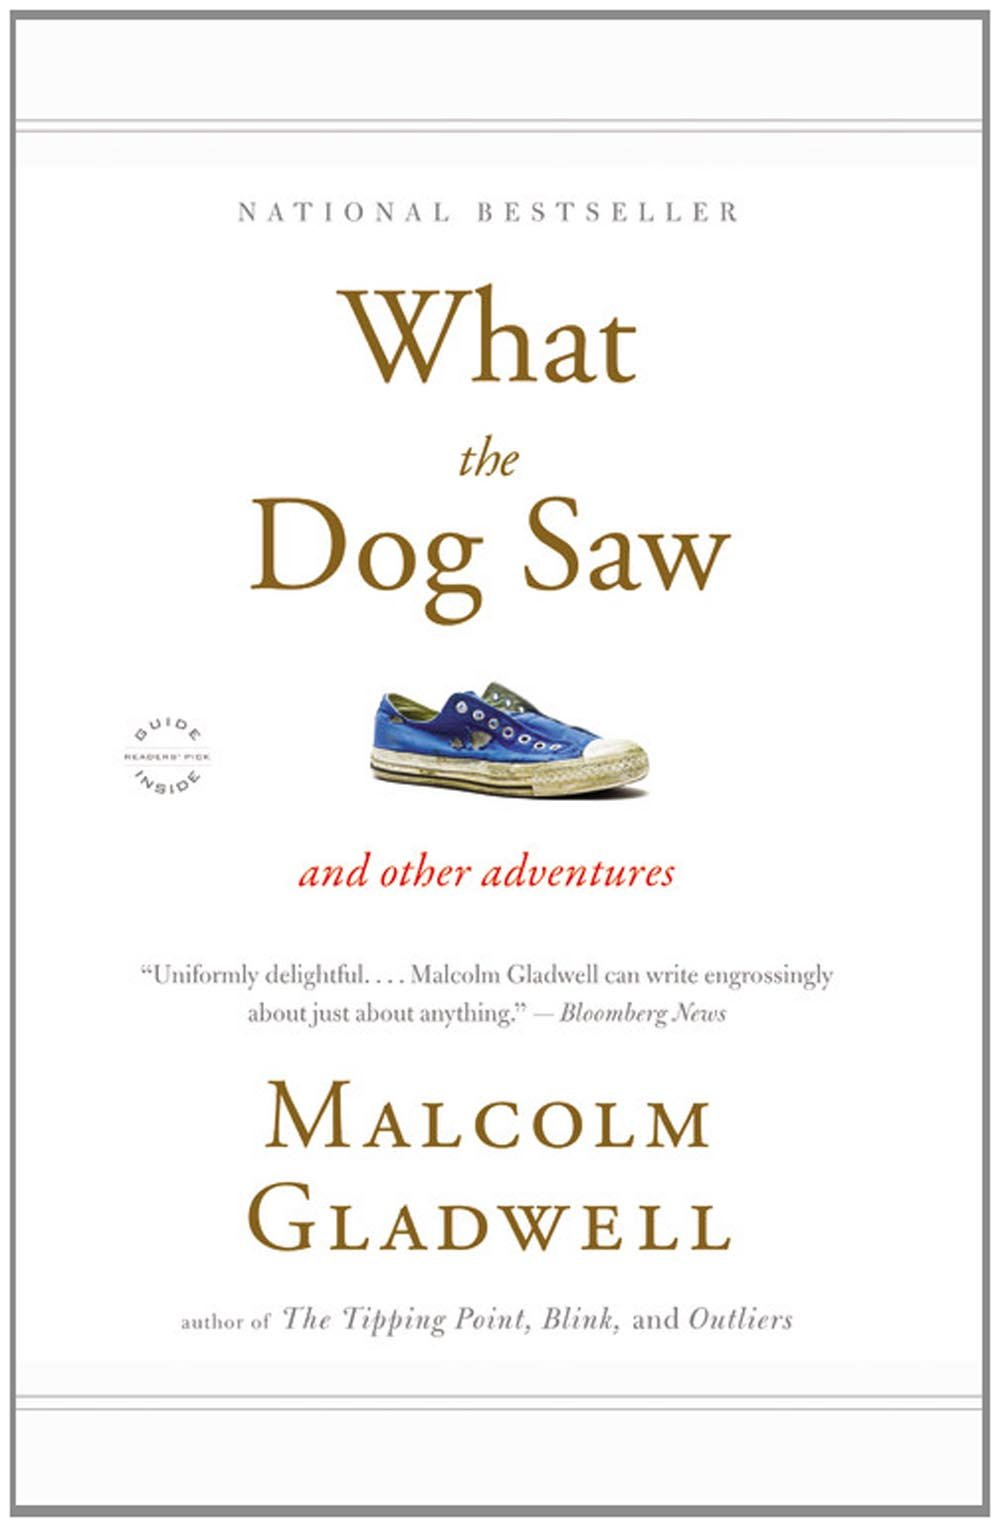 What the Dog Saw and Other Adventures by Malcolm Gladwell book cover